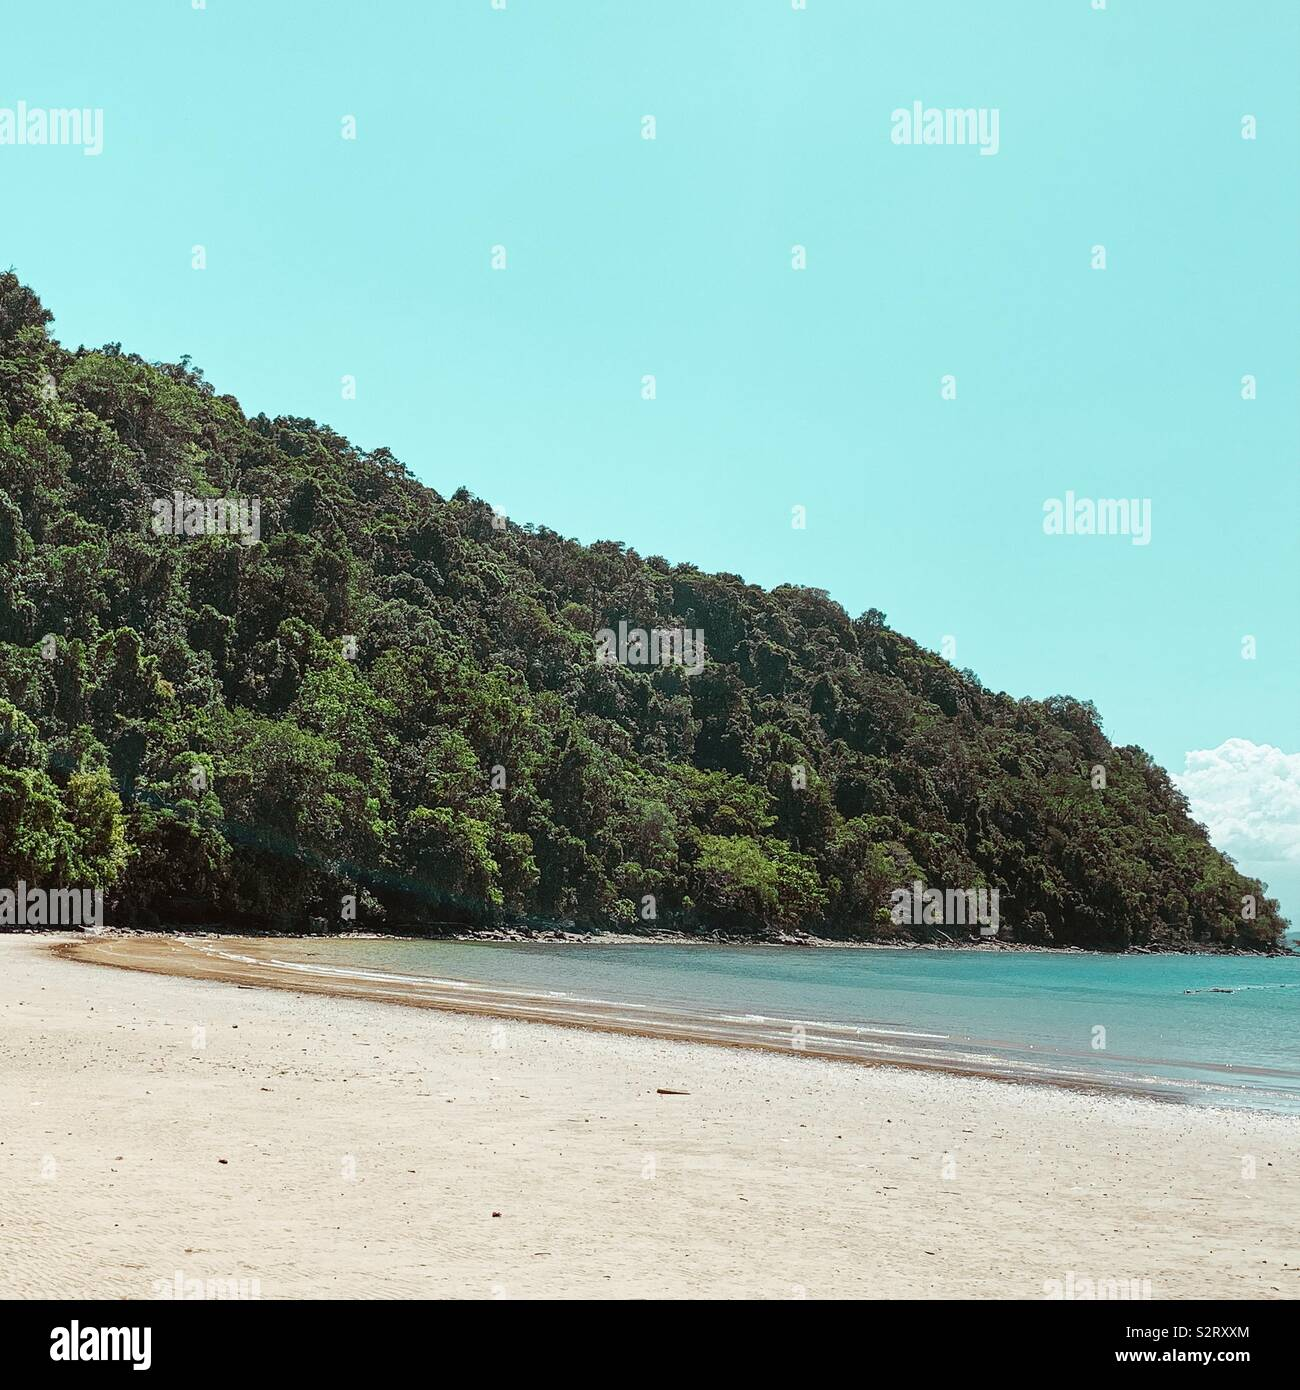 Tropical Island beach in Kota Kinabalu - Stock Image